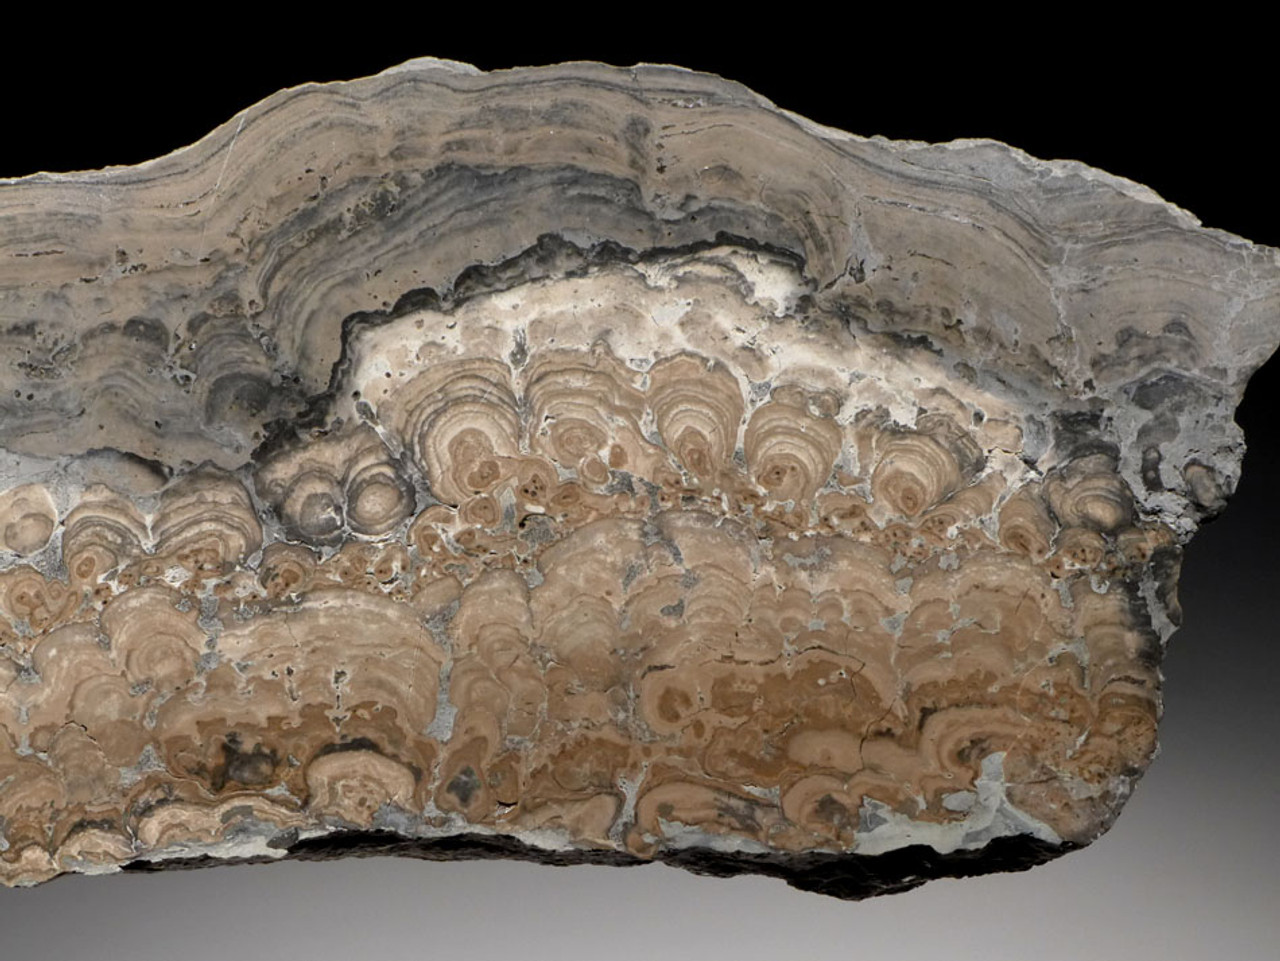 ST011 - LARGE POLISHED SLICE OF PERMIAN STROMATOLITE COLONY AFTER THE PROTEROZOIC PERIOD FROM GERMANY